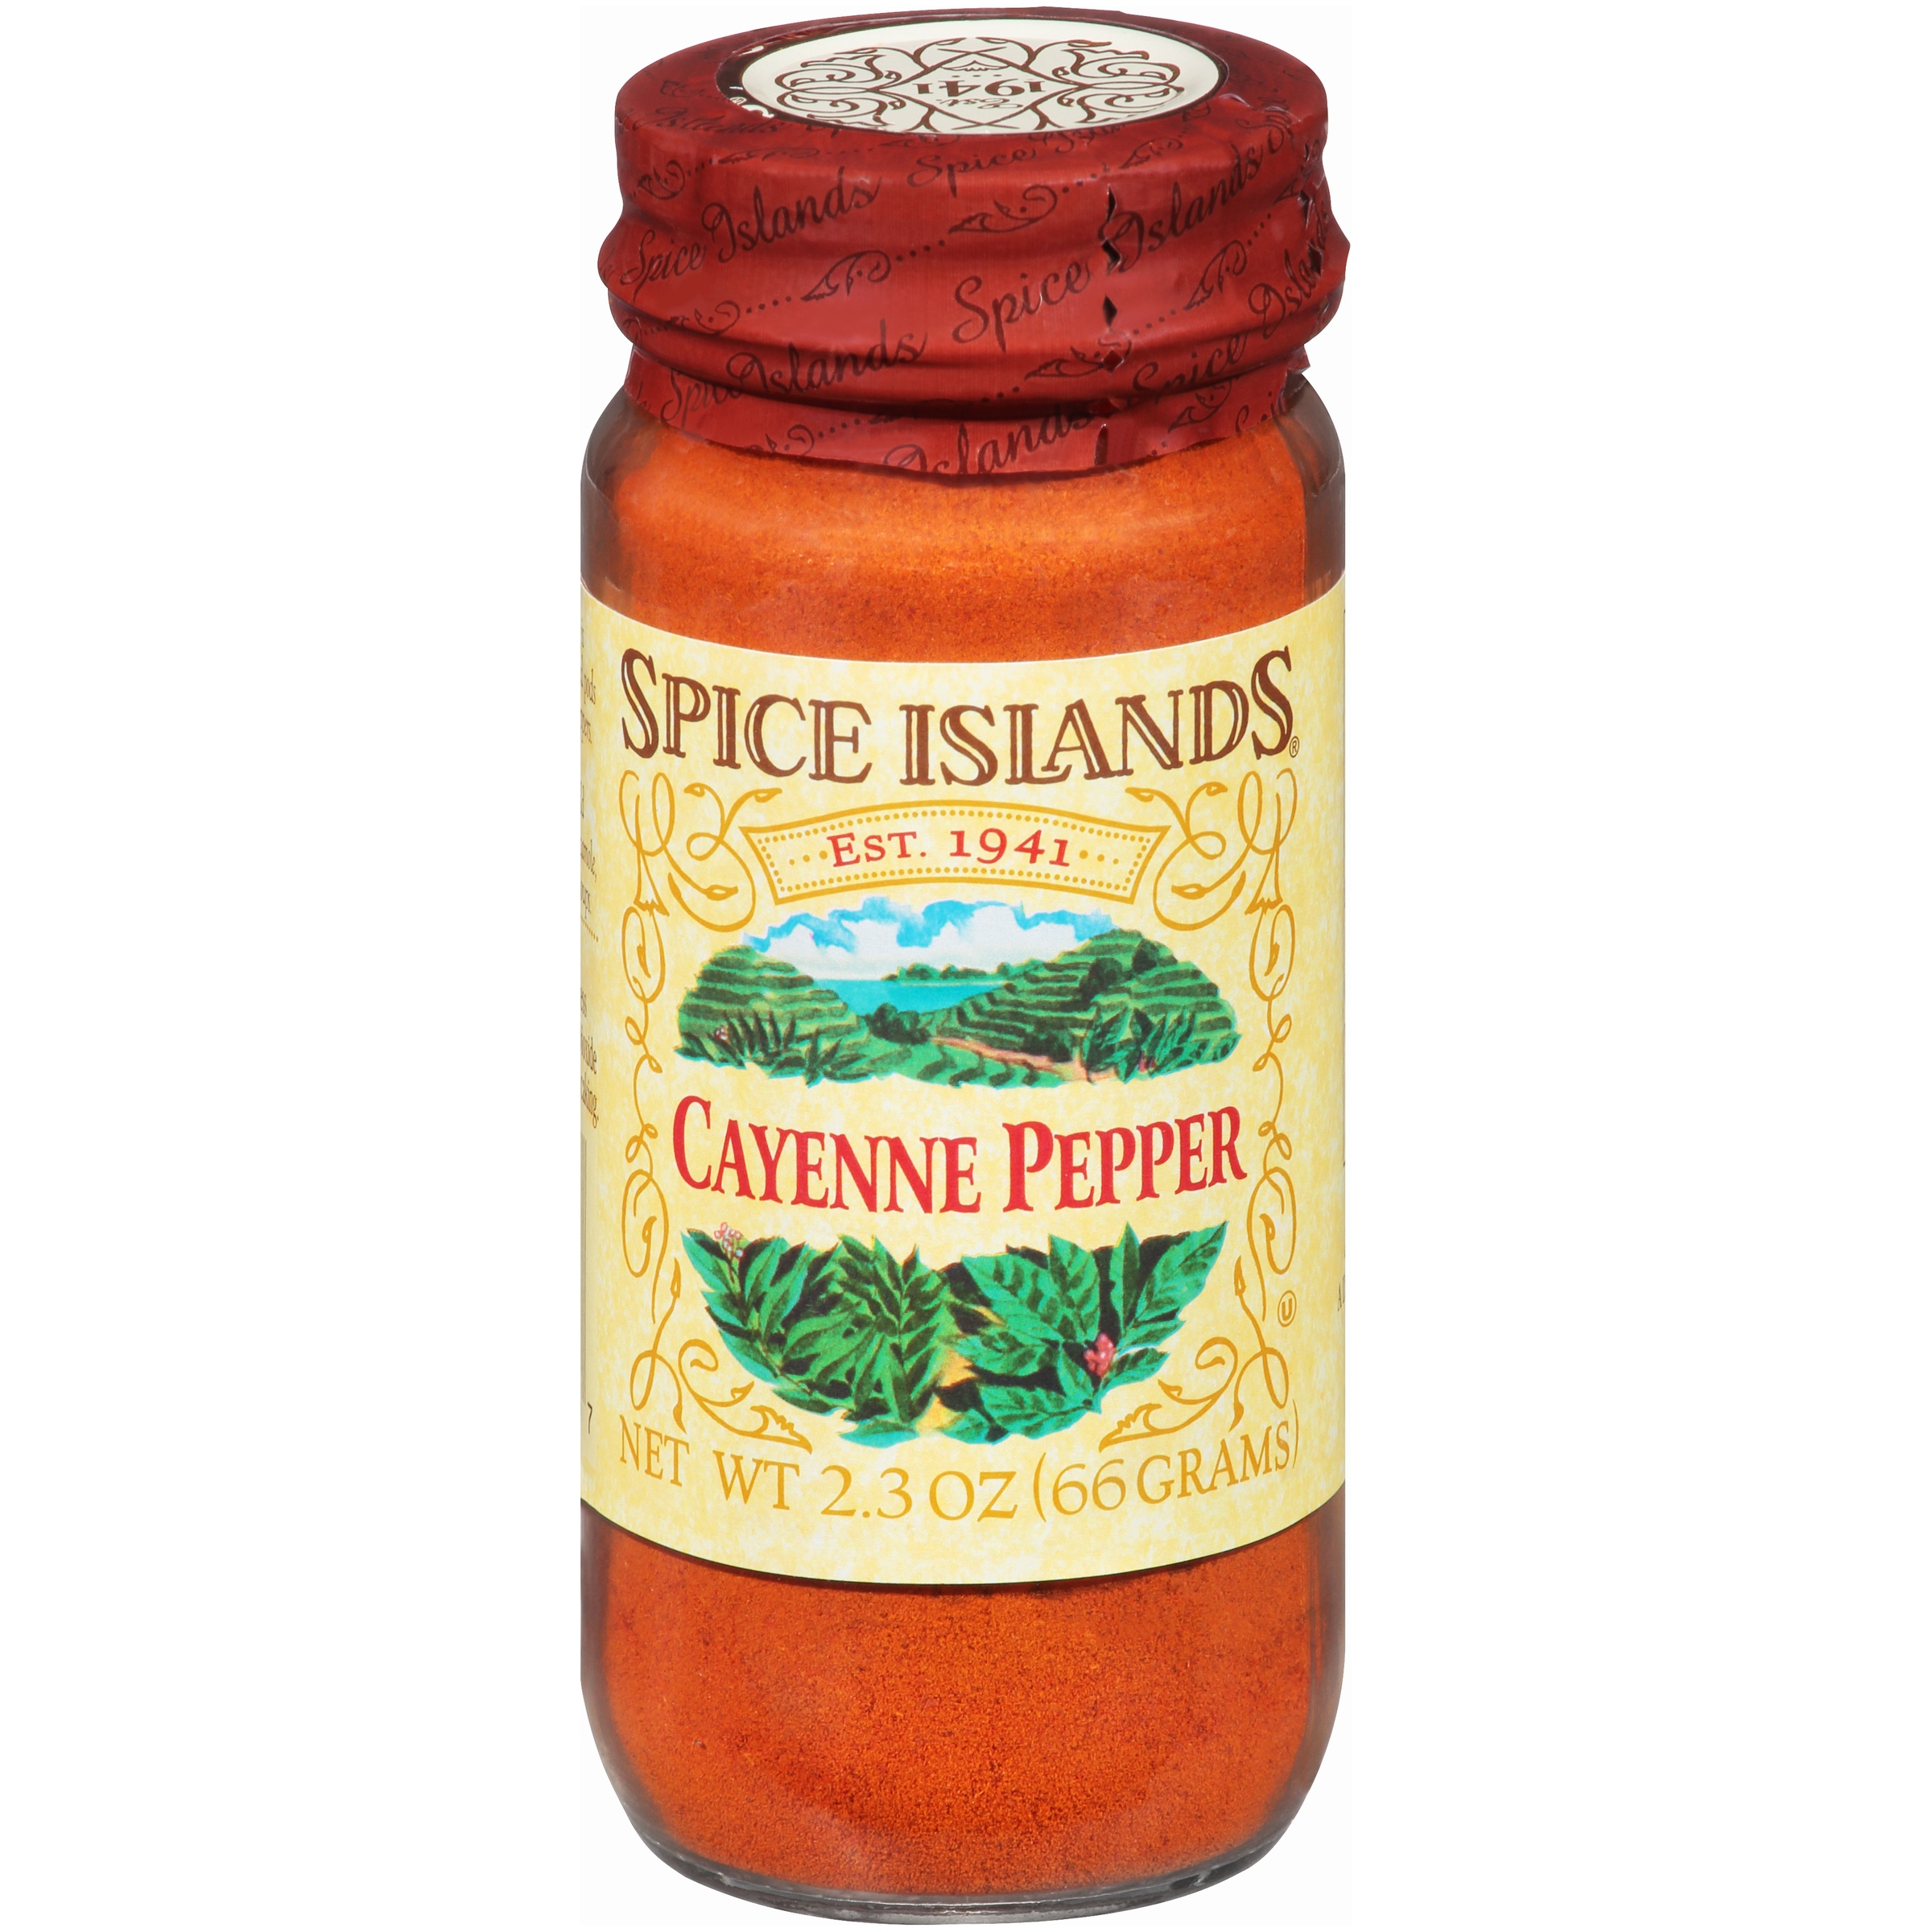 Spice Islands® Cayenne Pepper 2.3 oz. Jar